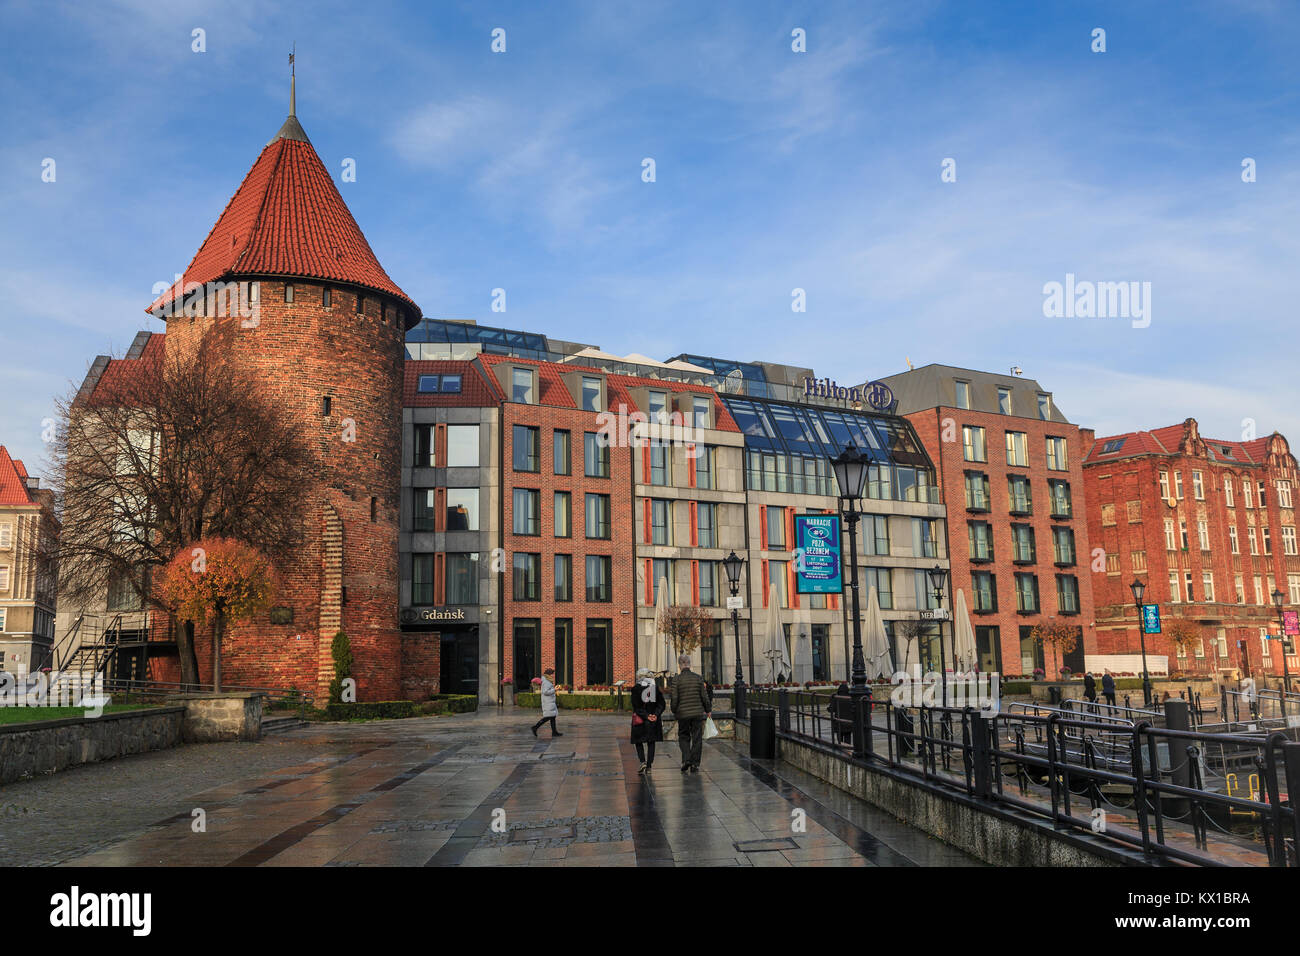 Hilton Hotel in Gdansk, Poland - Stock Image